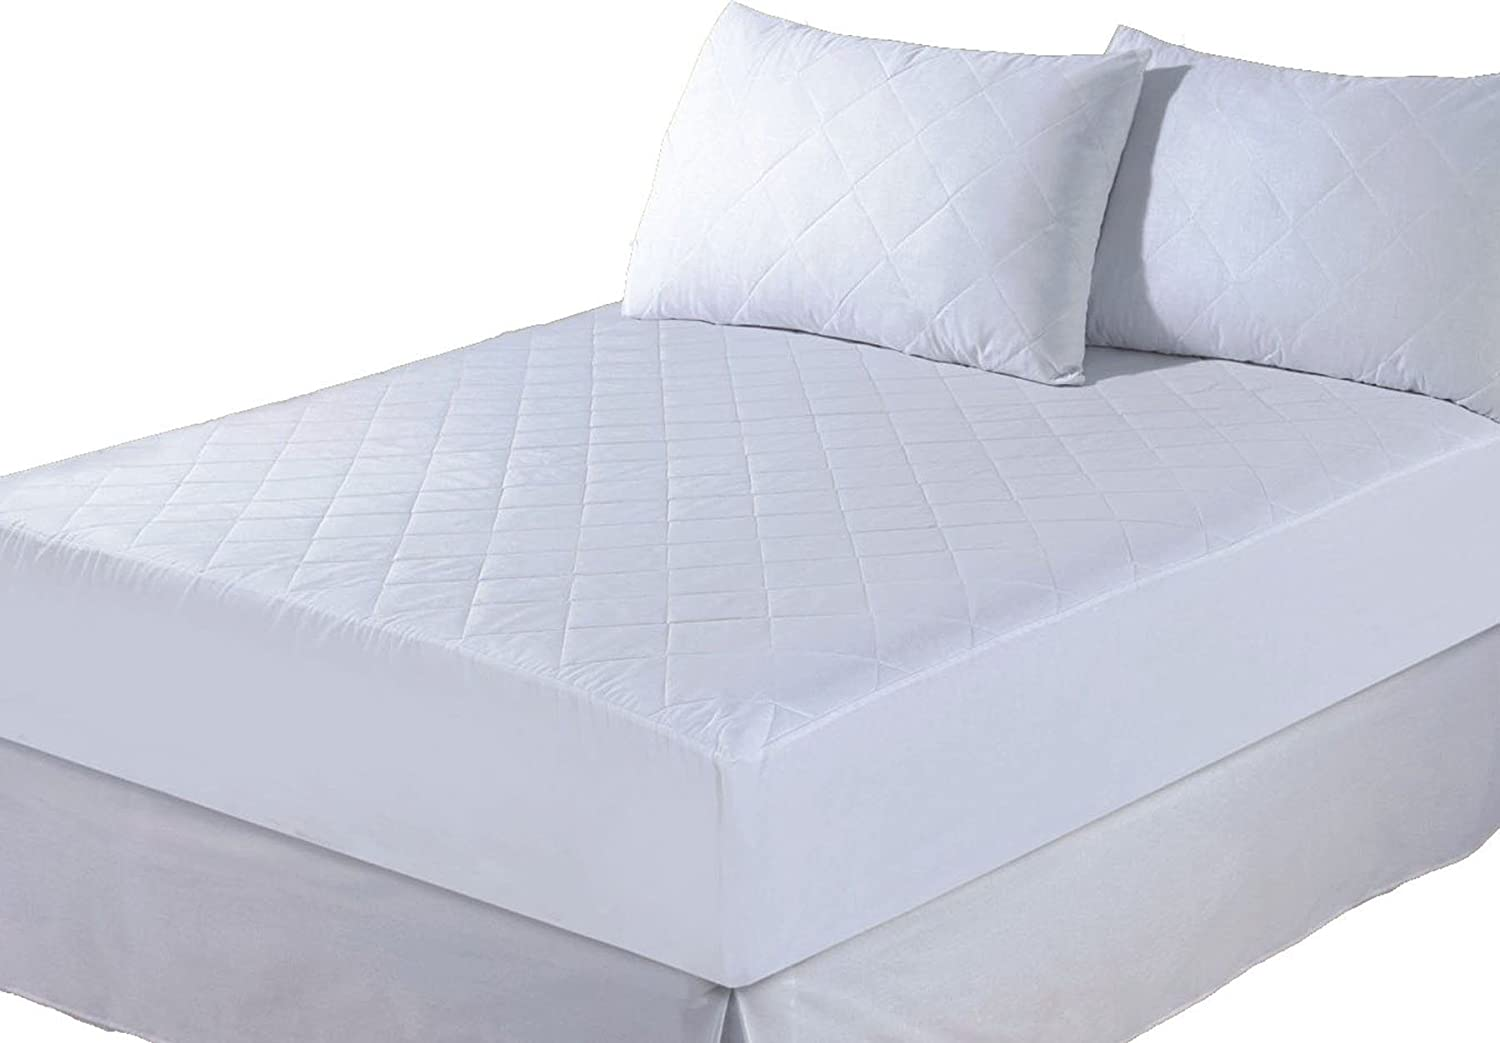 fitted mattress protector. Luxury 4FT Double Quilted Mattress Protector Fitted Sheet Bed Cover: Amazon.co.uk: Baby E